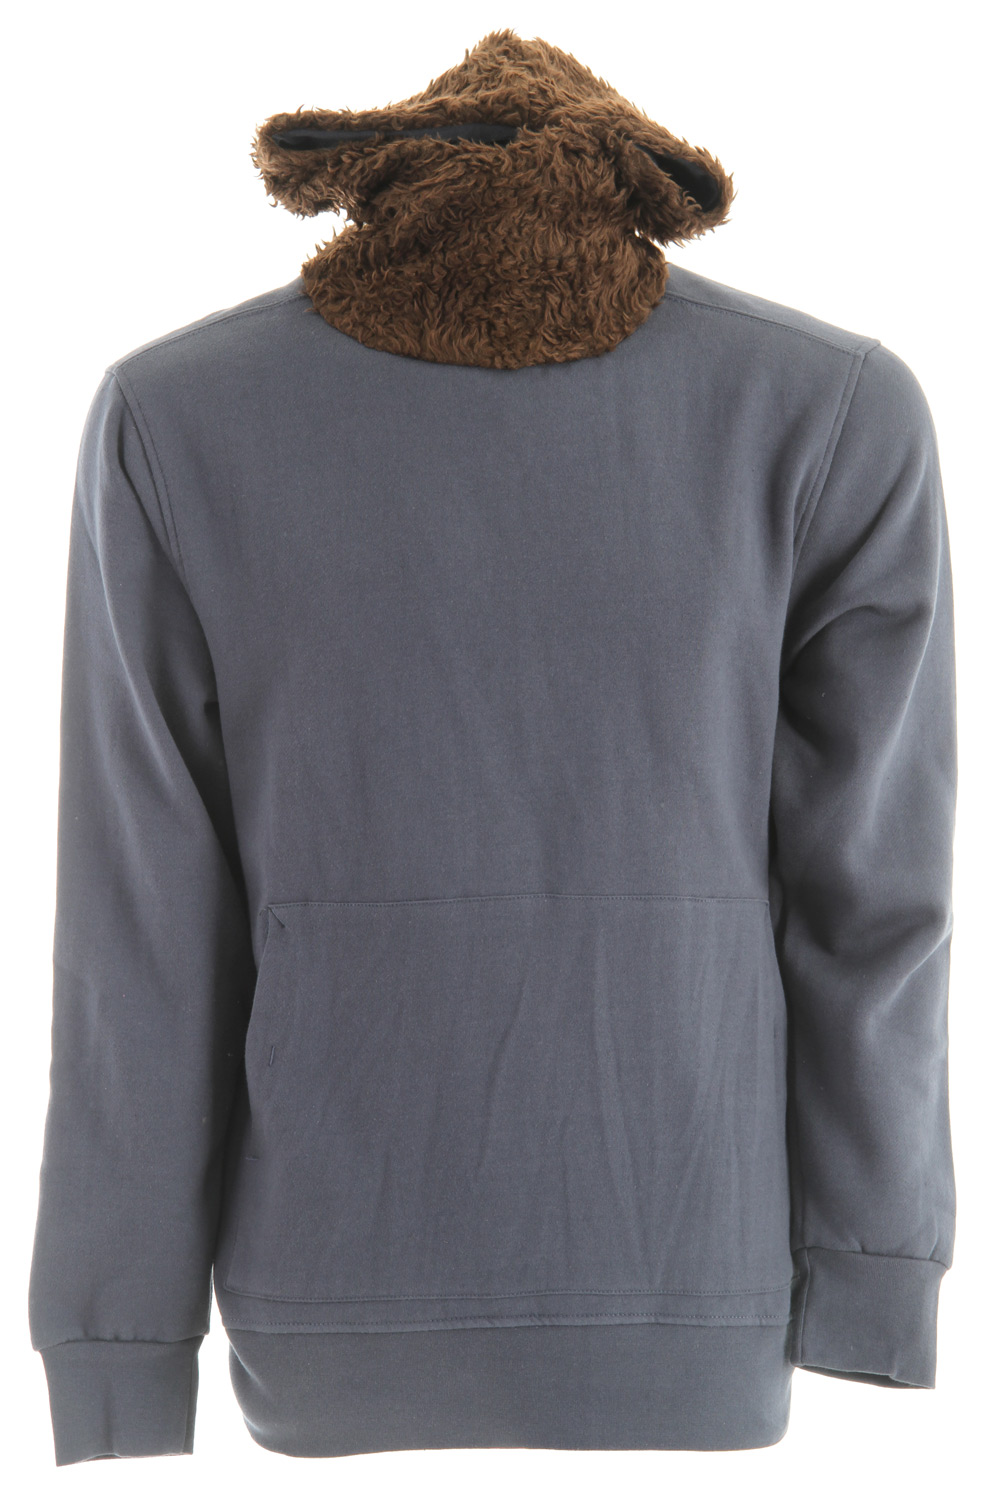 Snowboard Key Features of the Burton Harry Hoodie: 80% Cotton, 20% Polyester 280G Fleece - $43.95